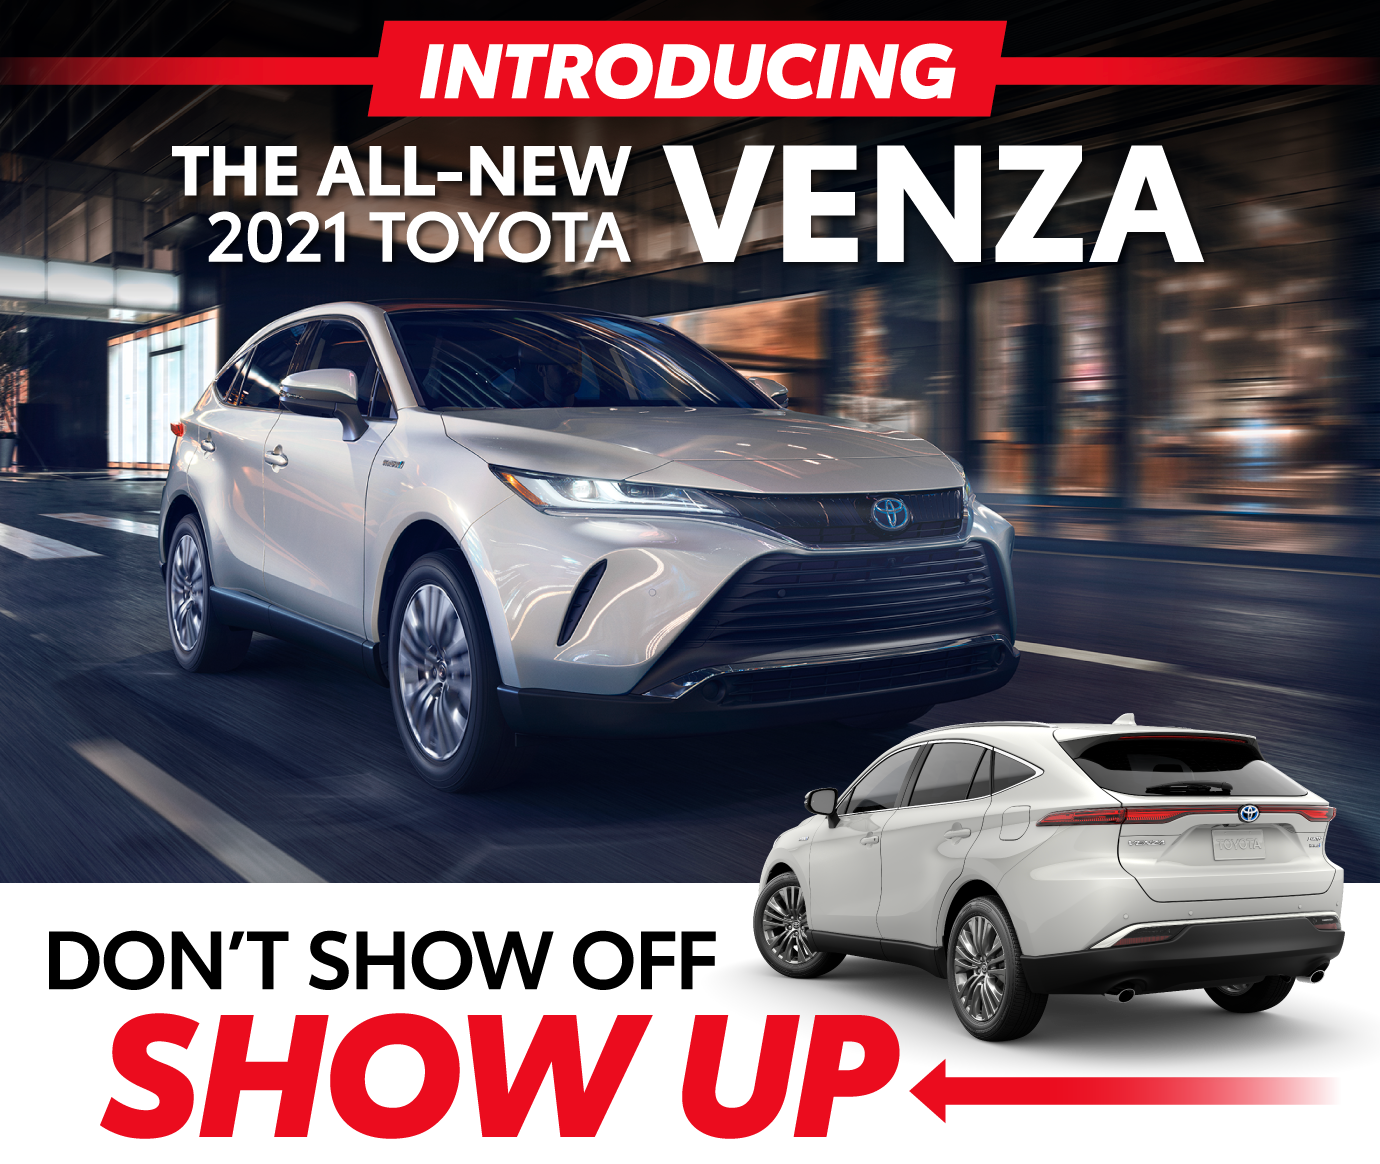 Introducing the ALl-New 2021 Toyota Venza at Toyota of Killeen - Don't Show Off, SHOW UP